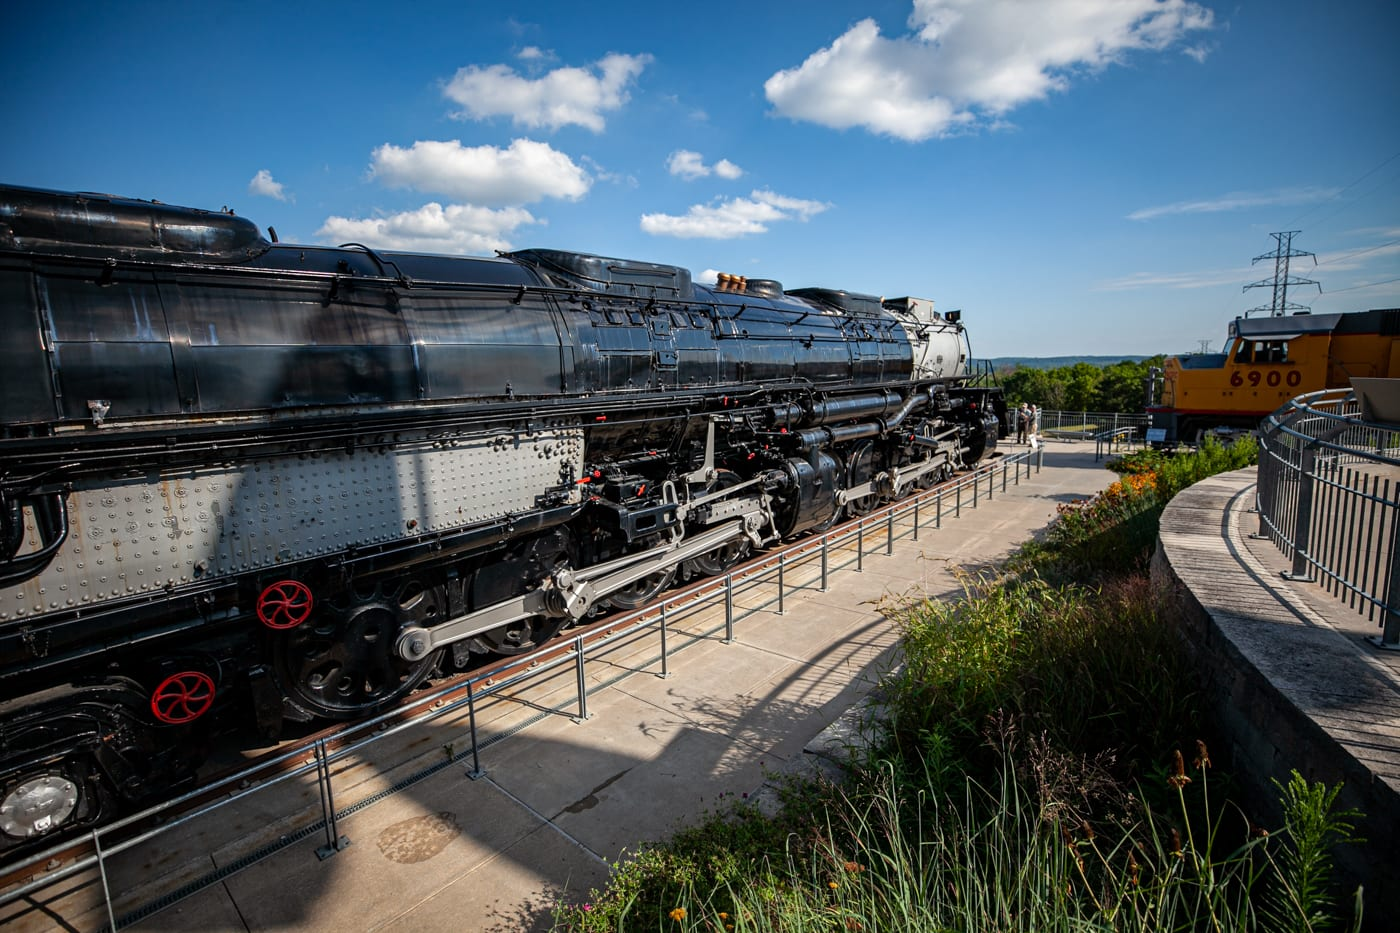 Kenefick Park: Union Pacific Big Boy & Centennial Trains in Omaha, Nebraska | Omaha Tourist Attractions